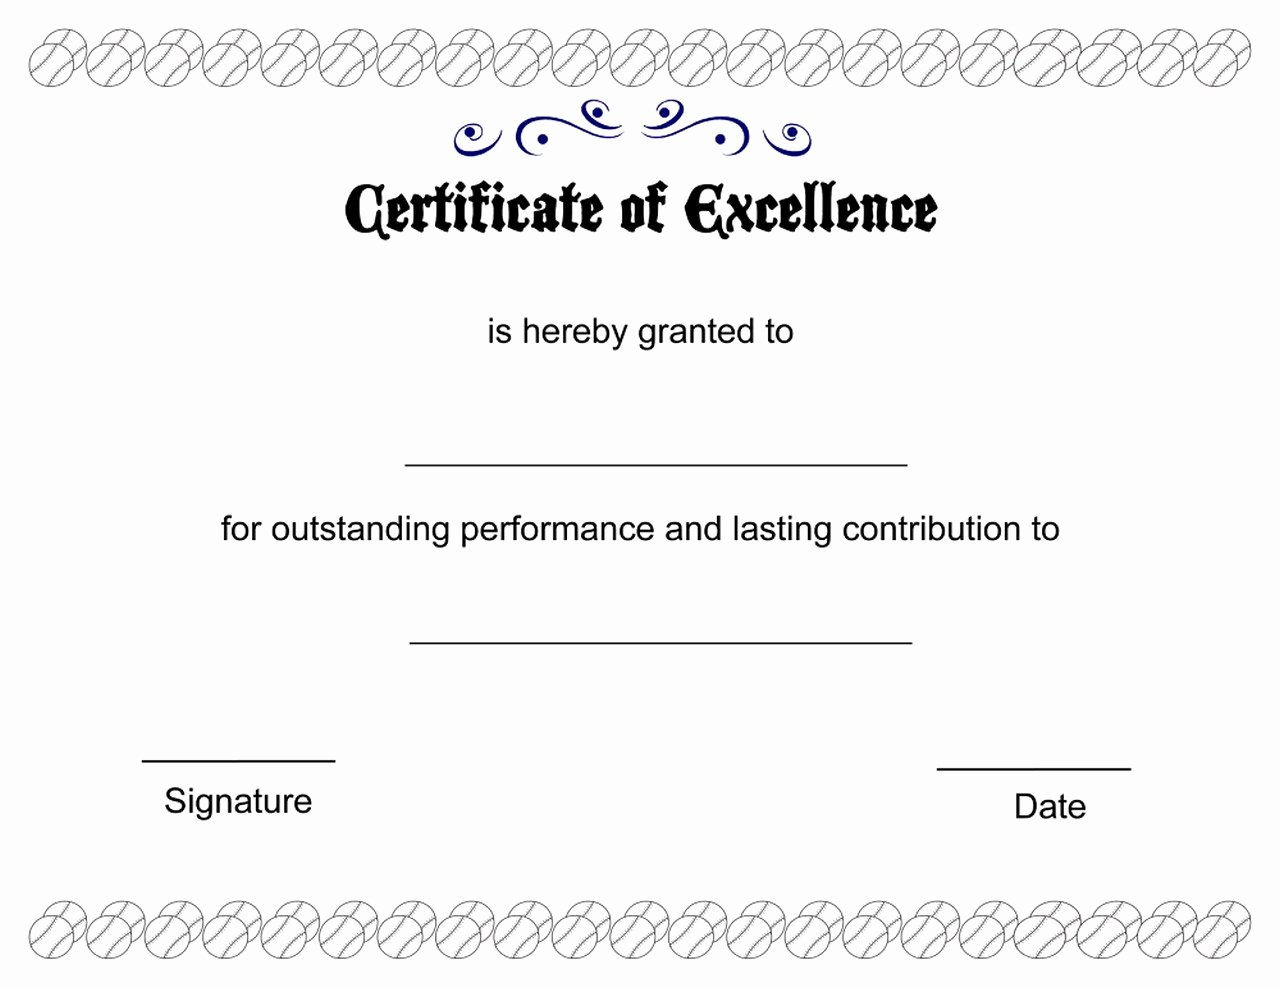 Certificate Of Excellence Template Word Awesome Certificate Of Excellence Printable Image – Learning Printable